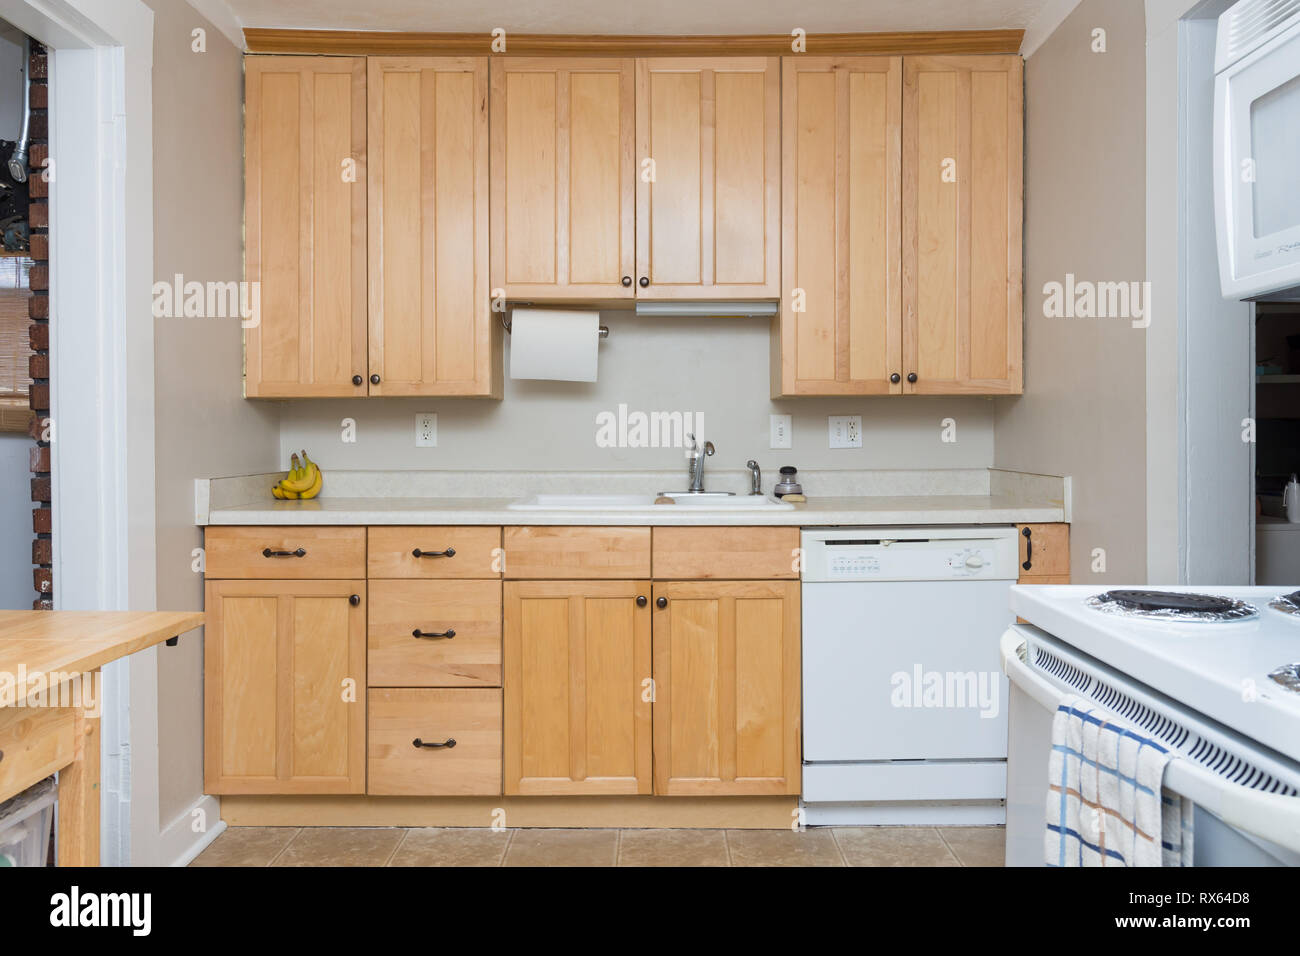 Clean light tan wood cabinets in small kitchen space Stock ...